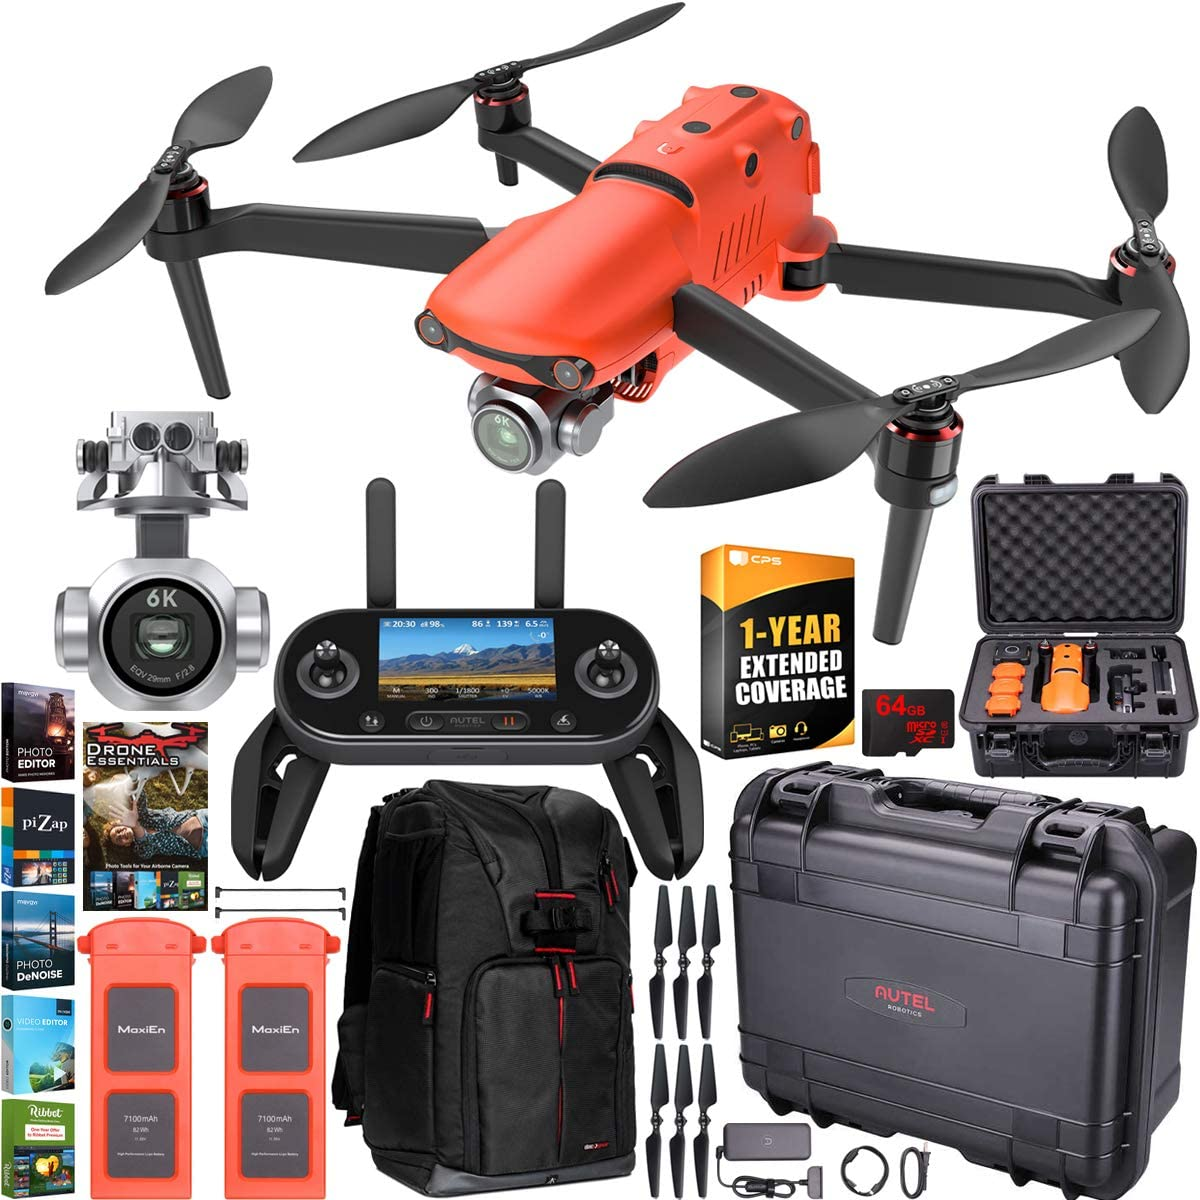 Autel Robotics EVO 2 Pro Drone Folding Quadcopter Rugged Combo 6K HDR Video and Mapping EVO II Pro Extended Warranty Expedition Bundle with Custom Hard Case + Remote Control + Backpack + Software Kit